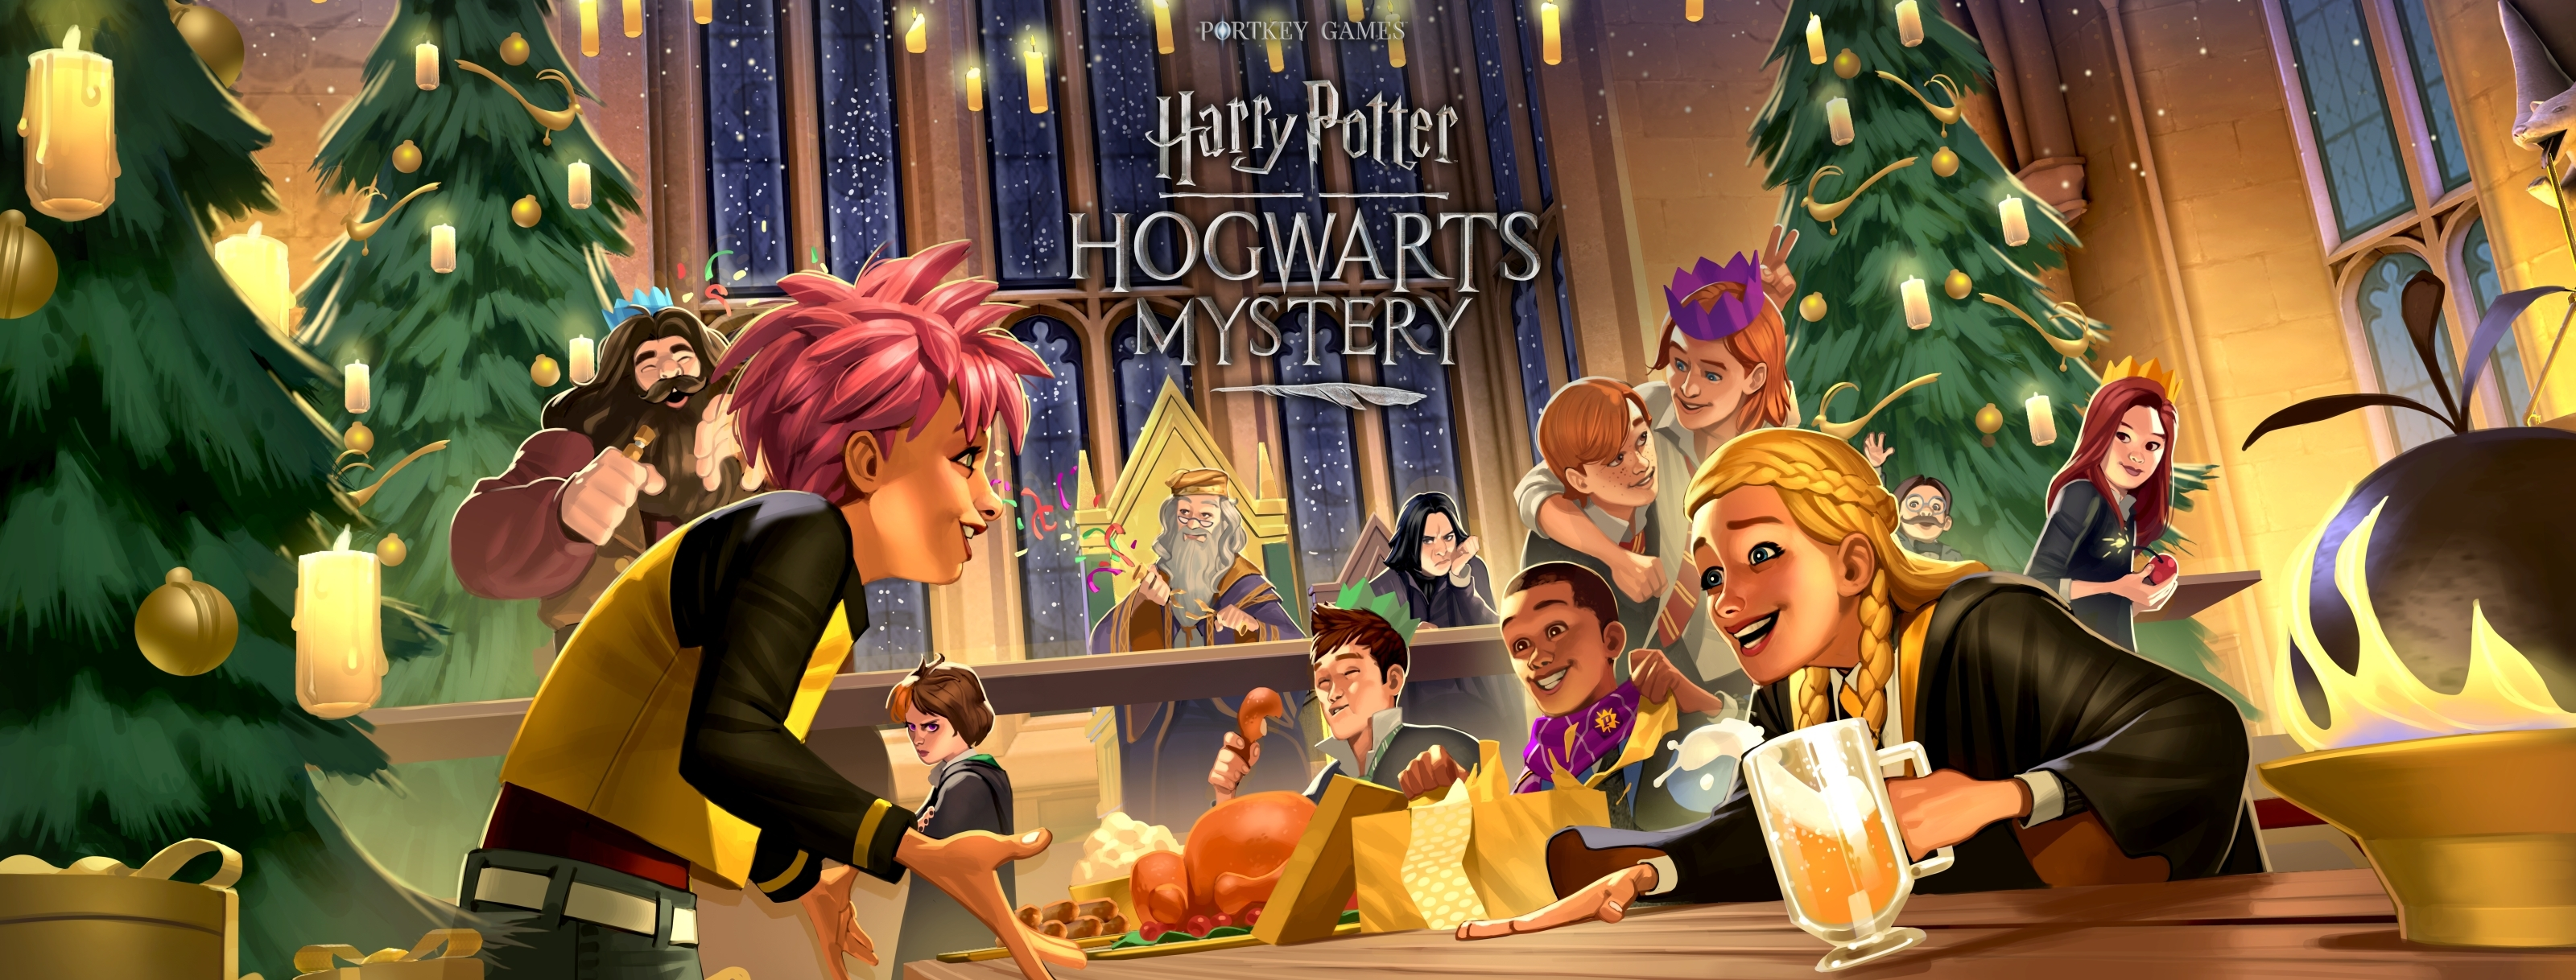 Harry Potter Hogwarts Mystery Invites Players To Deck The Halls For Christmas In The Wizarding World Business Wire